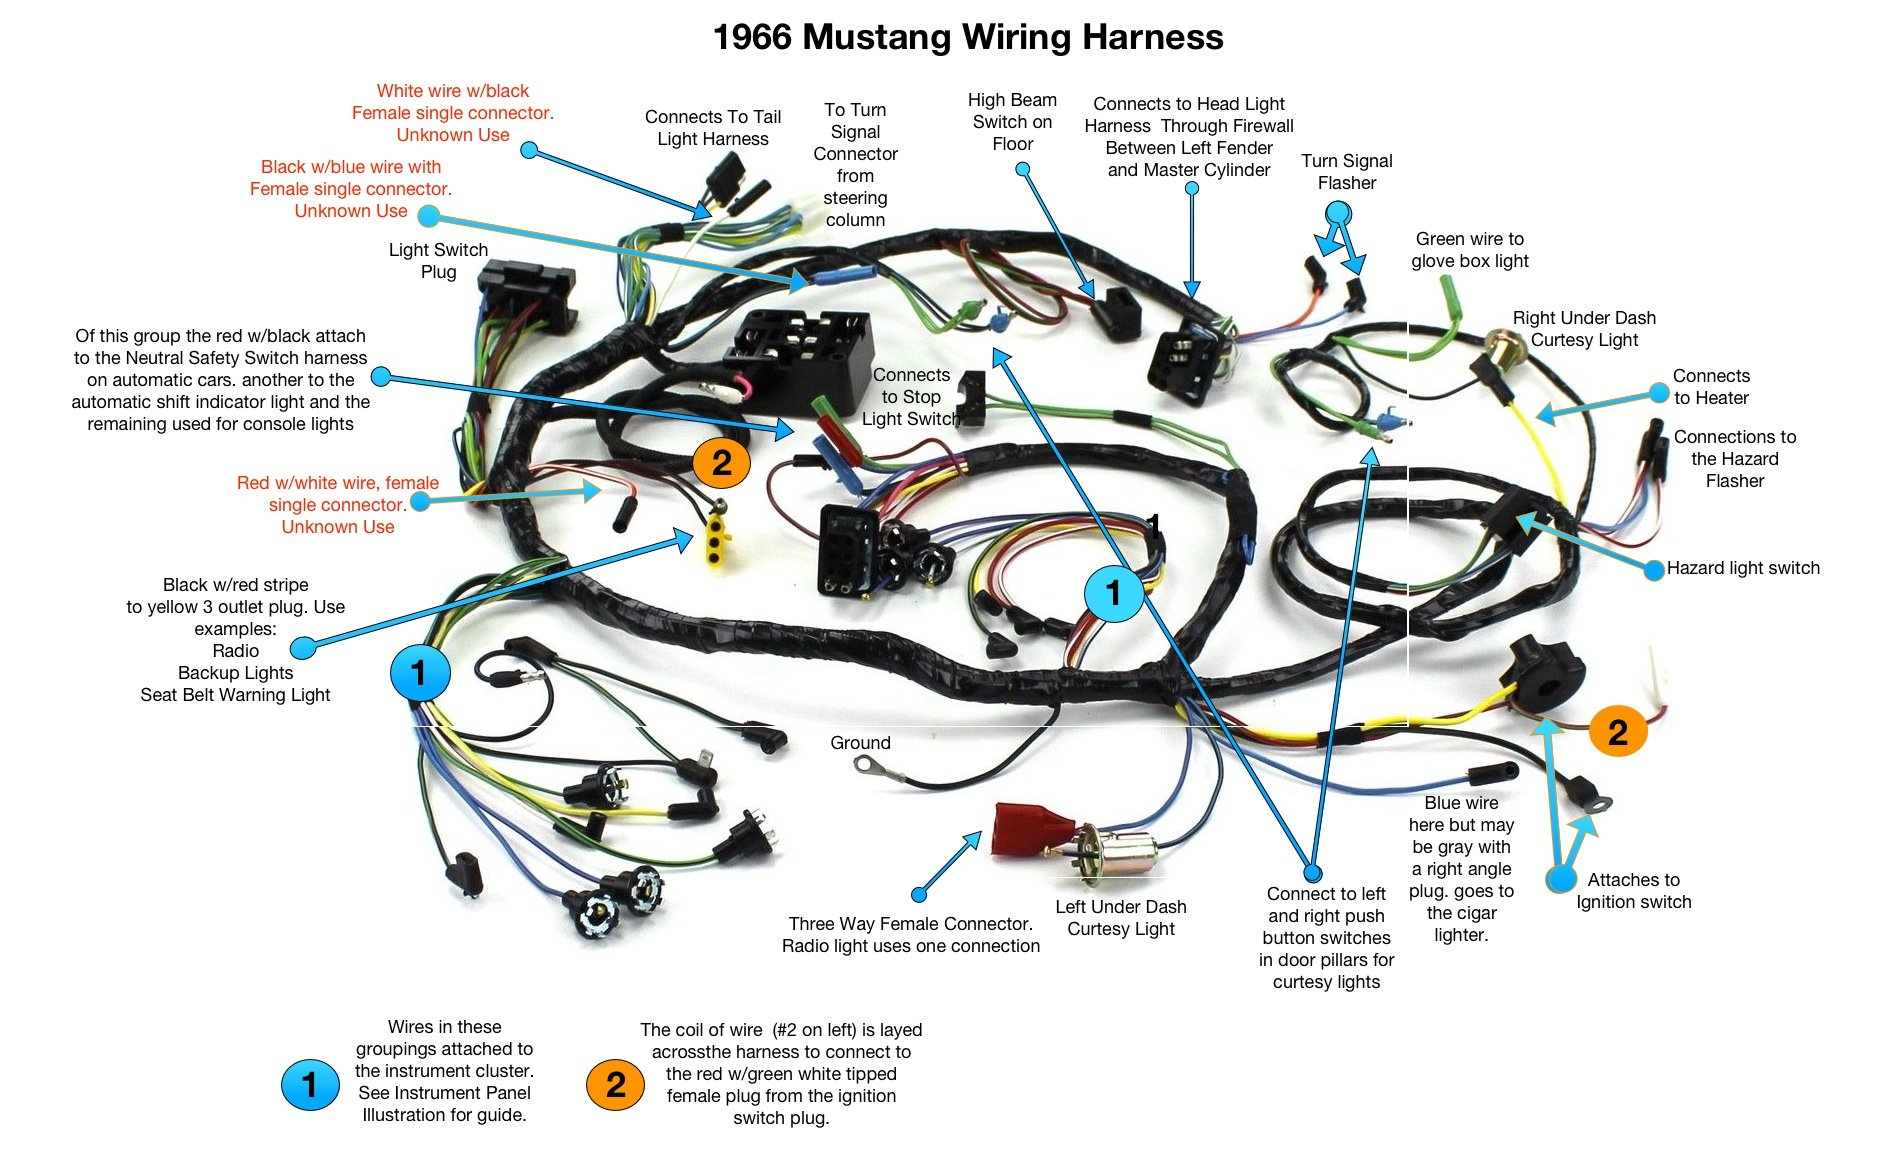 Clic Car Wiring Harness Diagram - basic electrical wiring ... Old Car Wiring Diagram on old car accessories, old car chassis, old car electrical systems, old car spec sheets, old car brakes, old car engine, old auto diagrams, old car charging system, old car ignition, old car parts, old car battery, old car blueprints, old car schematics,